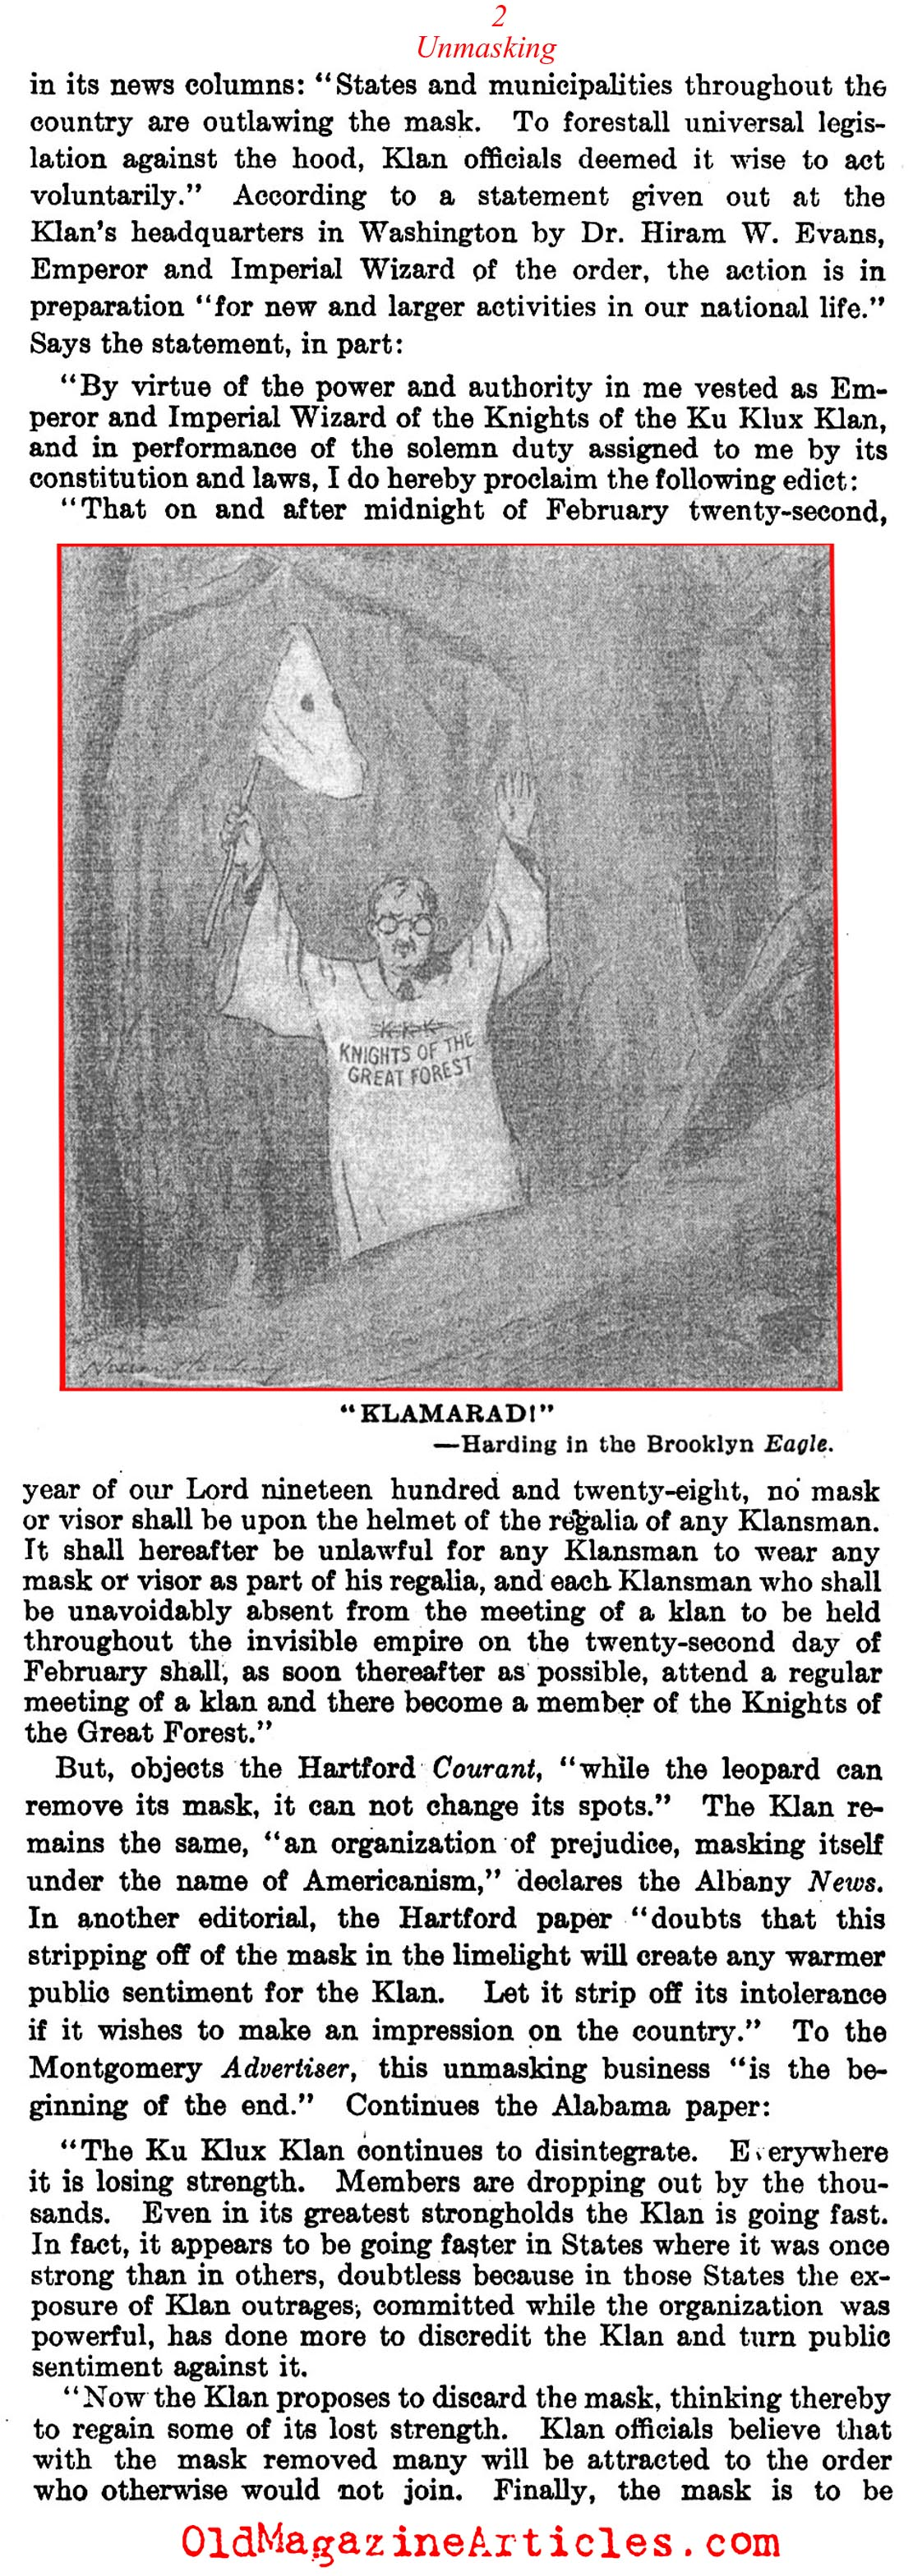 The KKK Fall from Fashion  (The Literary Digest, 1928)